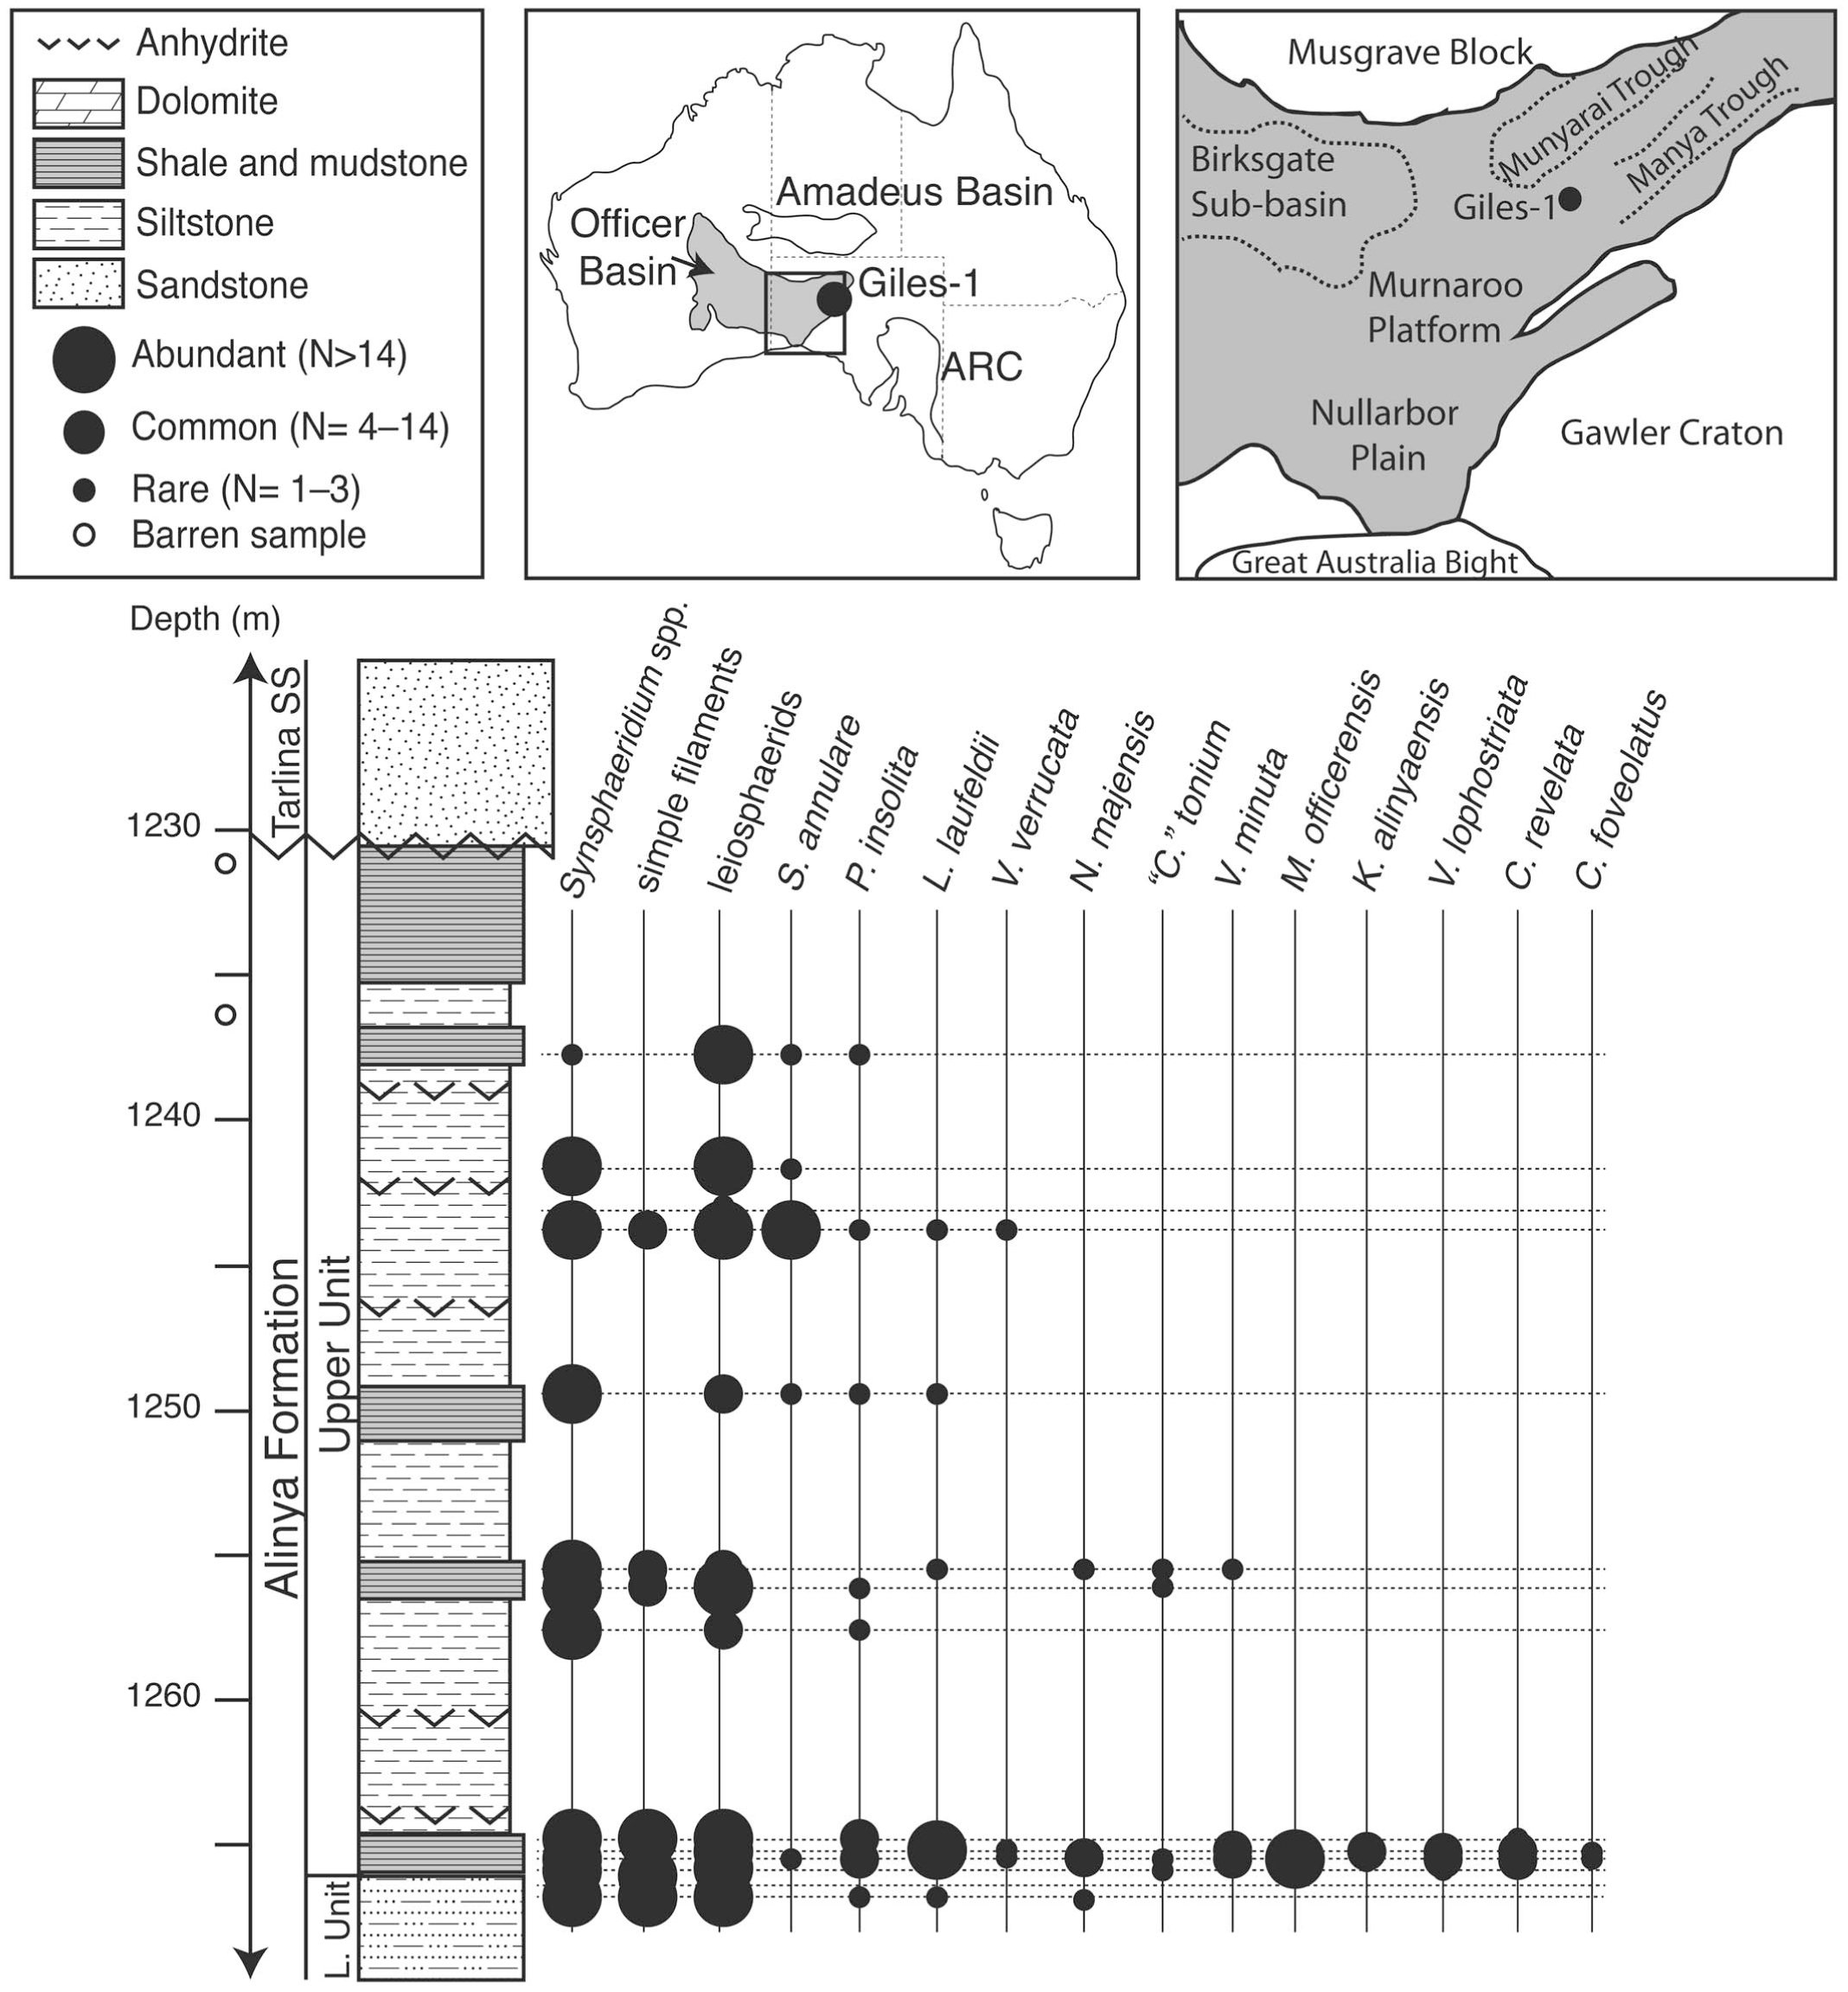 Organic Walled Microfossils Of The Mid Neoproterozoic Alinya